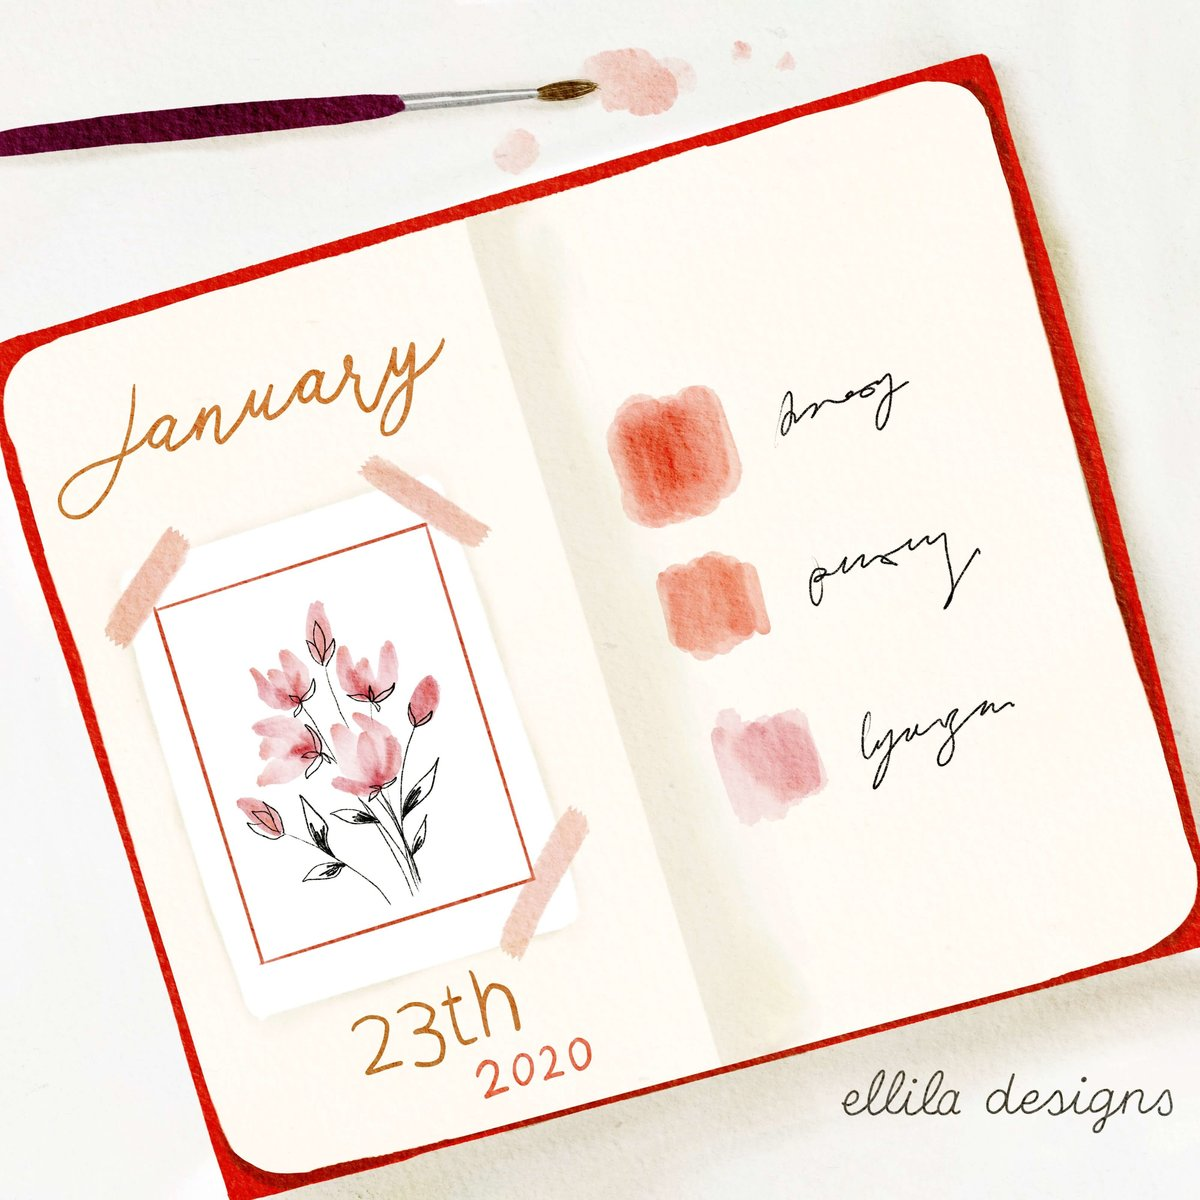 Journal watercolor illustration Ellila Designs